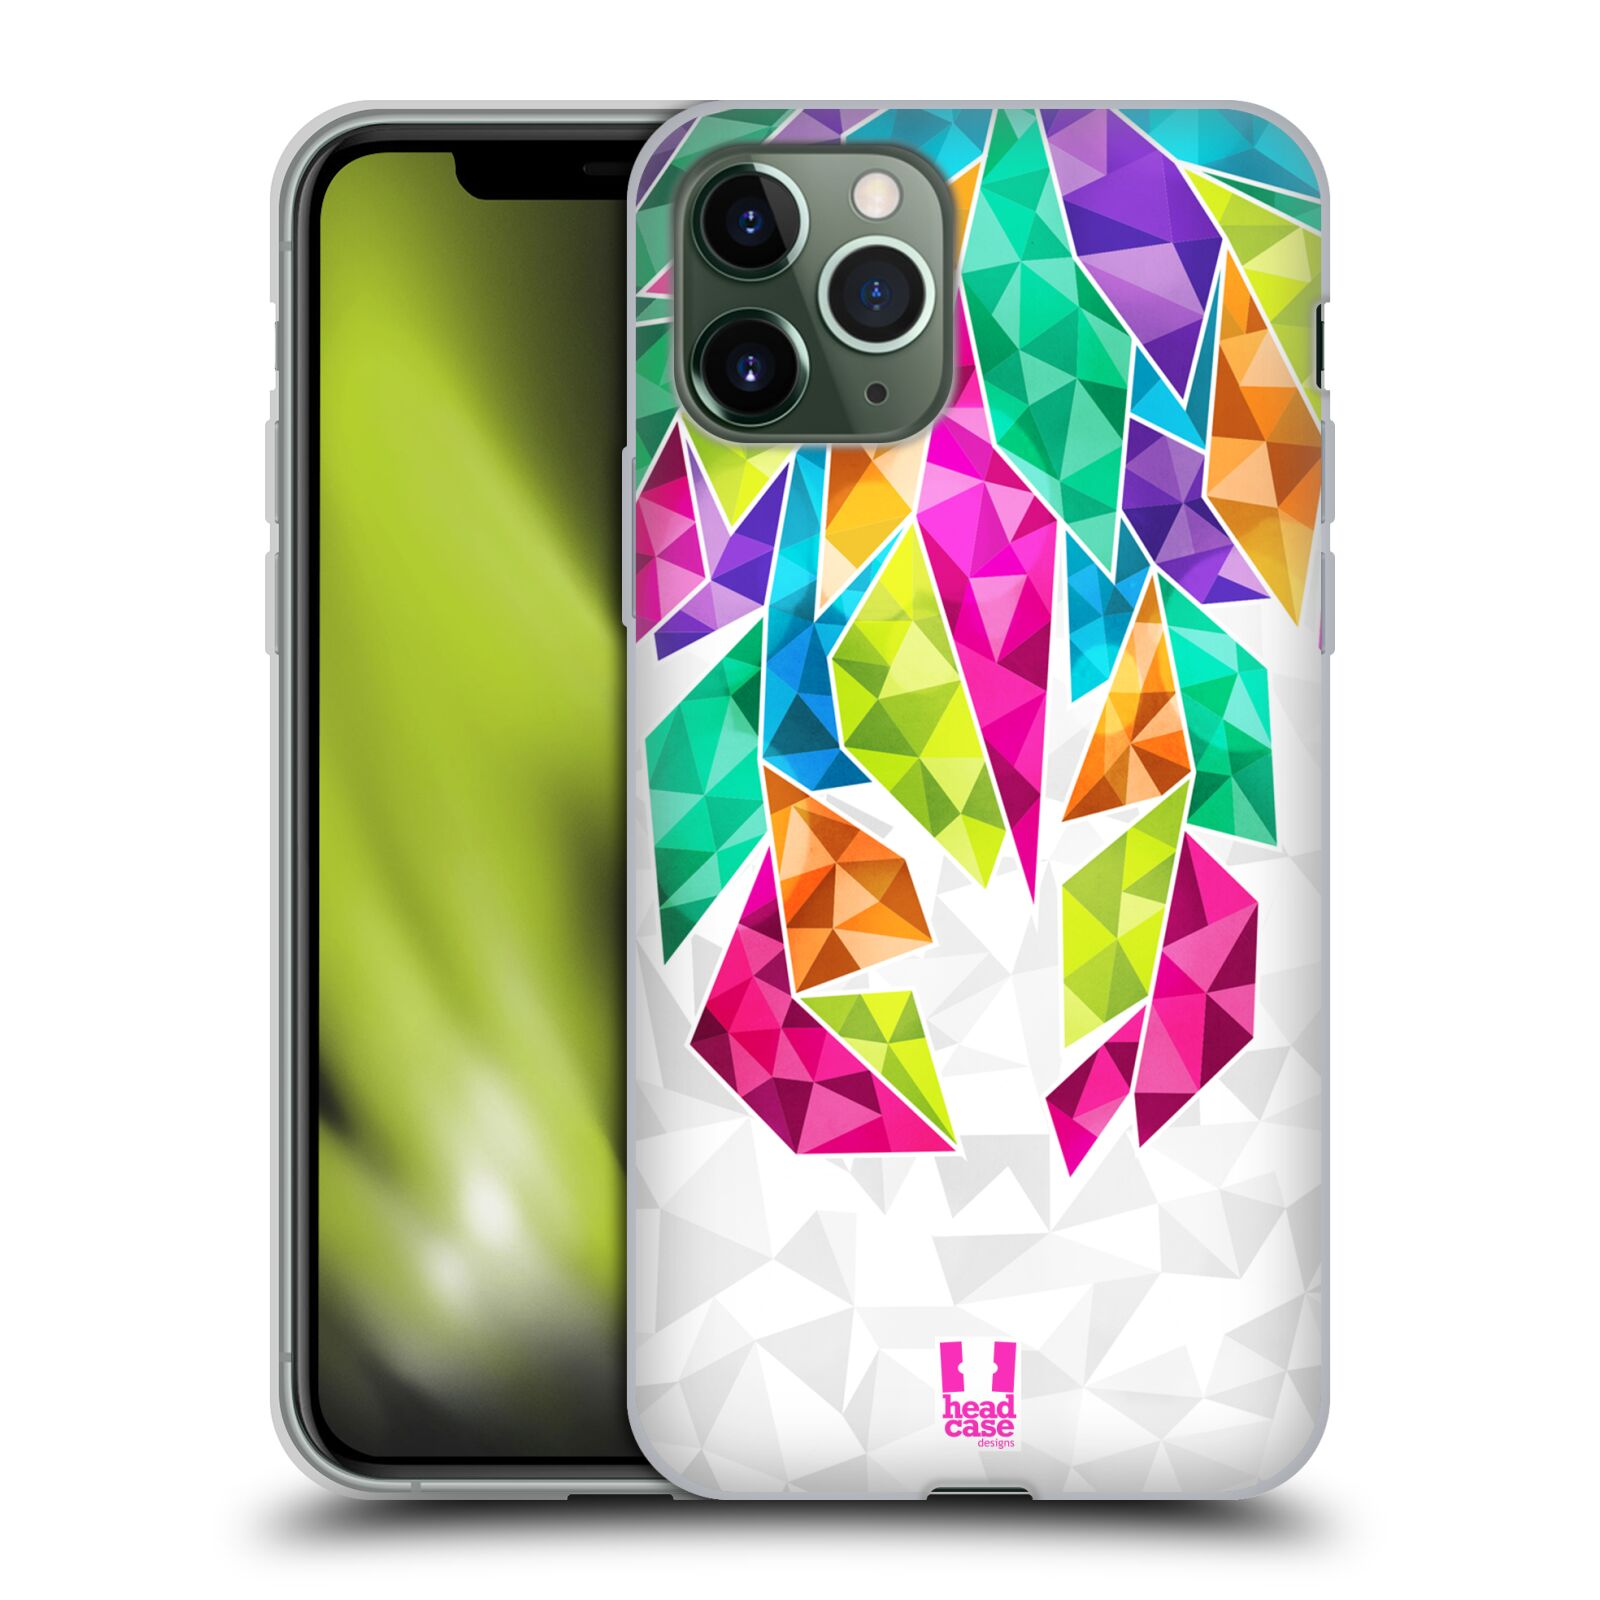 iphone obal x | Silikonové pouzdro na mobil Apple iPhone 11 Pro - Head Case - PÍRKA TICKLE